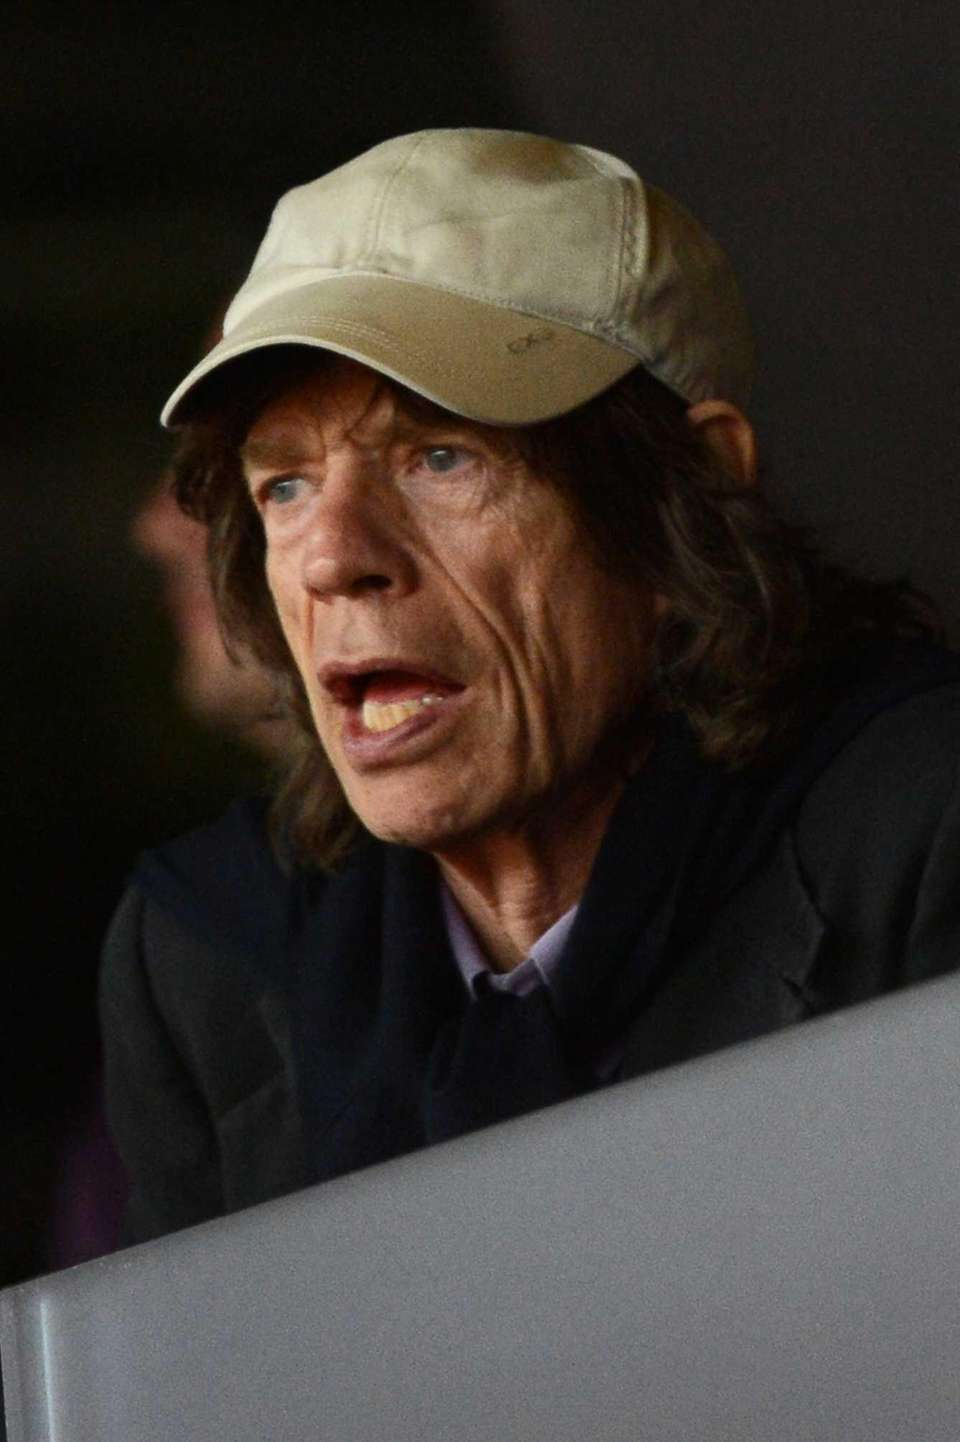 British musician Mick Jagger attends the athletics event